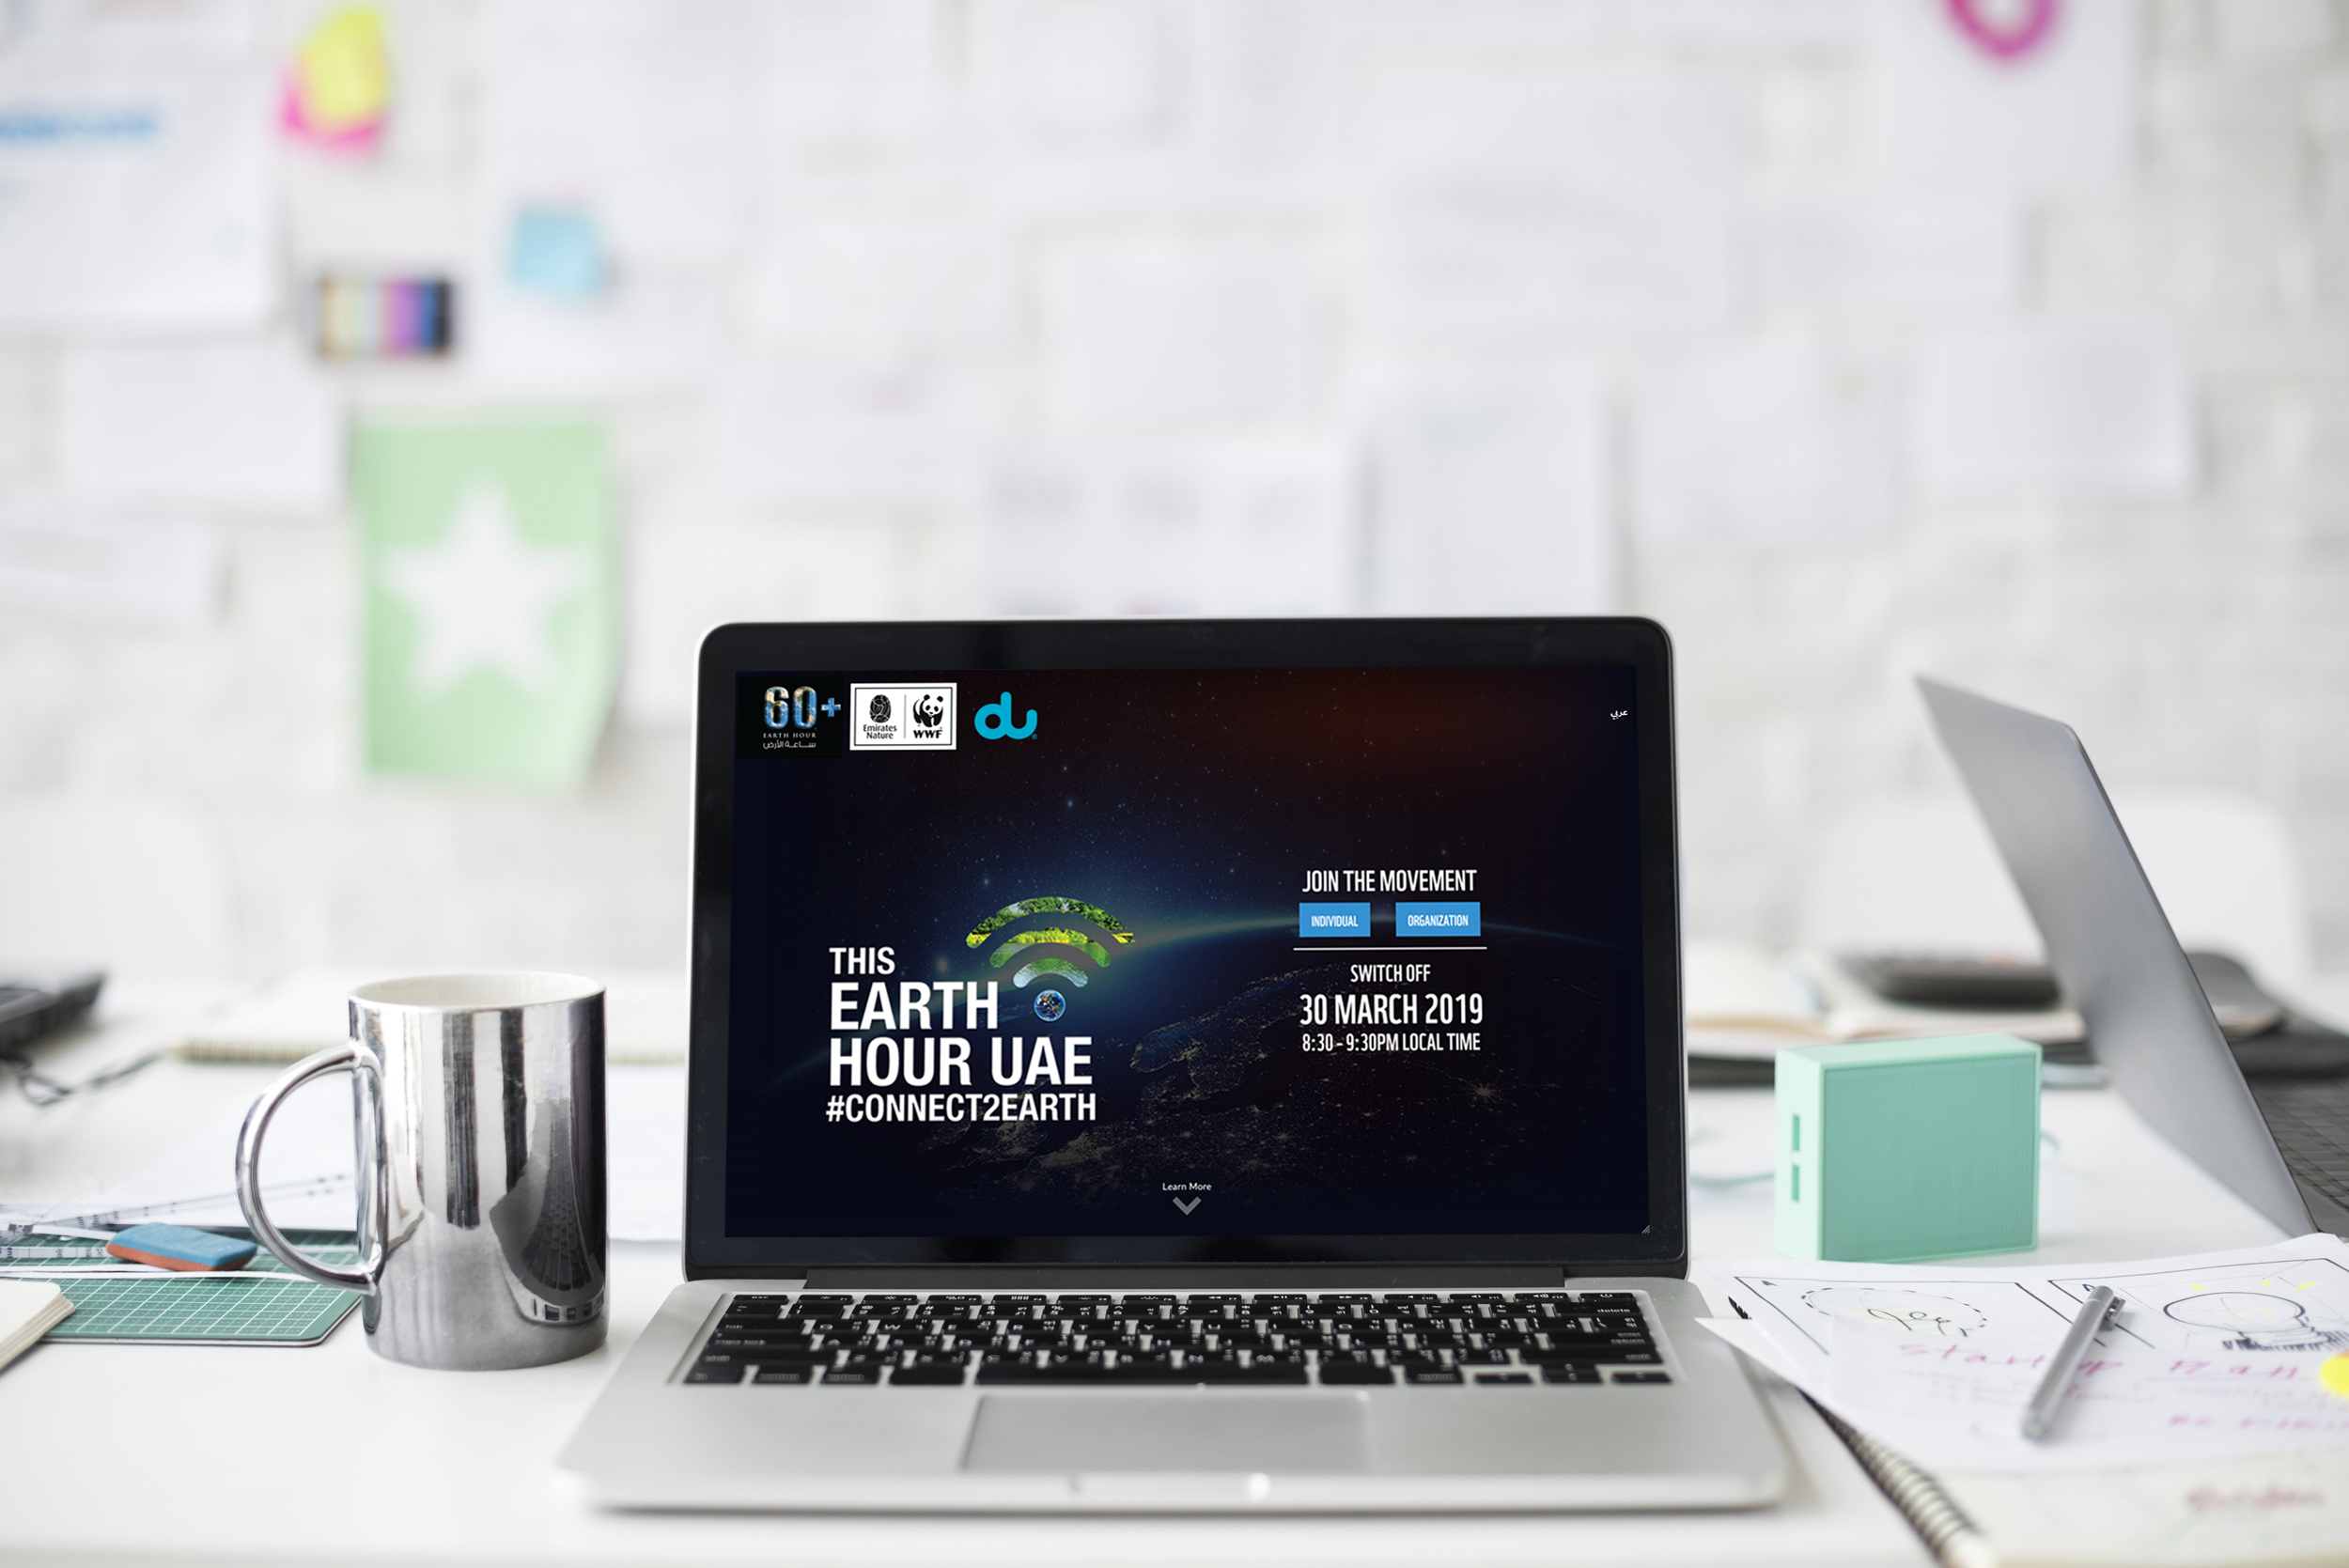 Earth Hour UAE. Platform to pledge to take action 'beyond the hour'